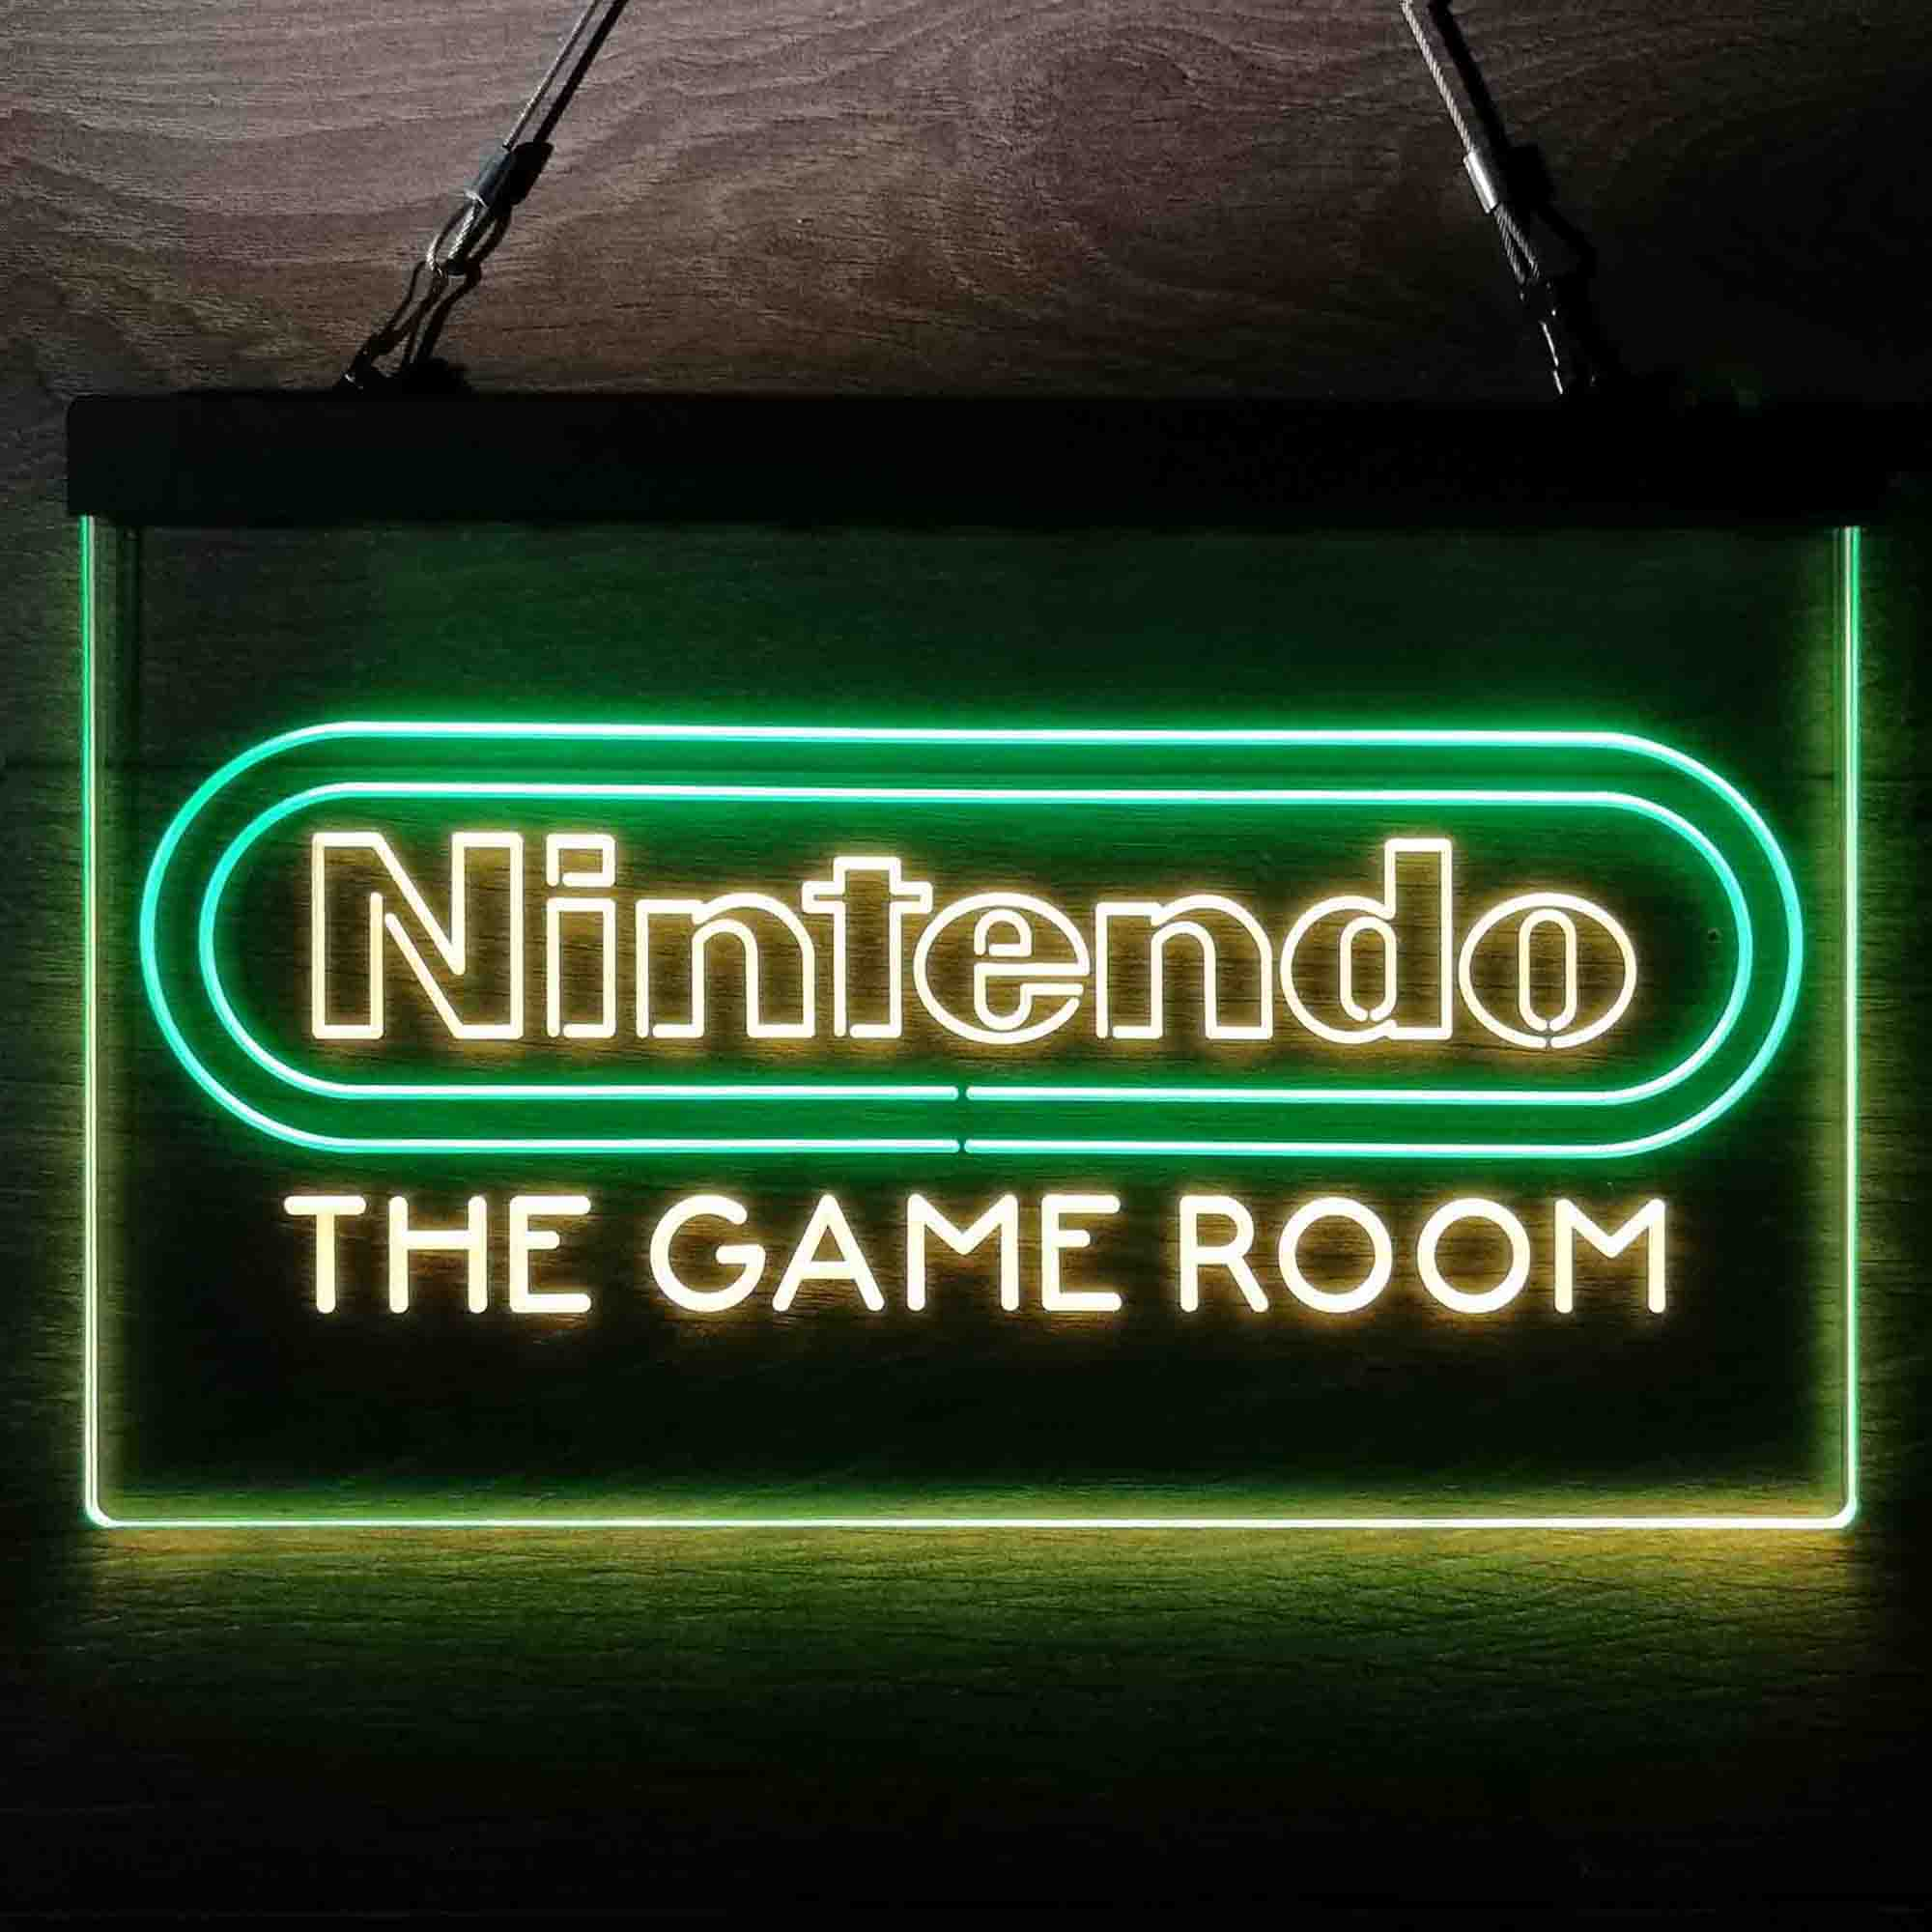 Nintendo Custom Personalized Game Room Neon-Like LED Sign